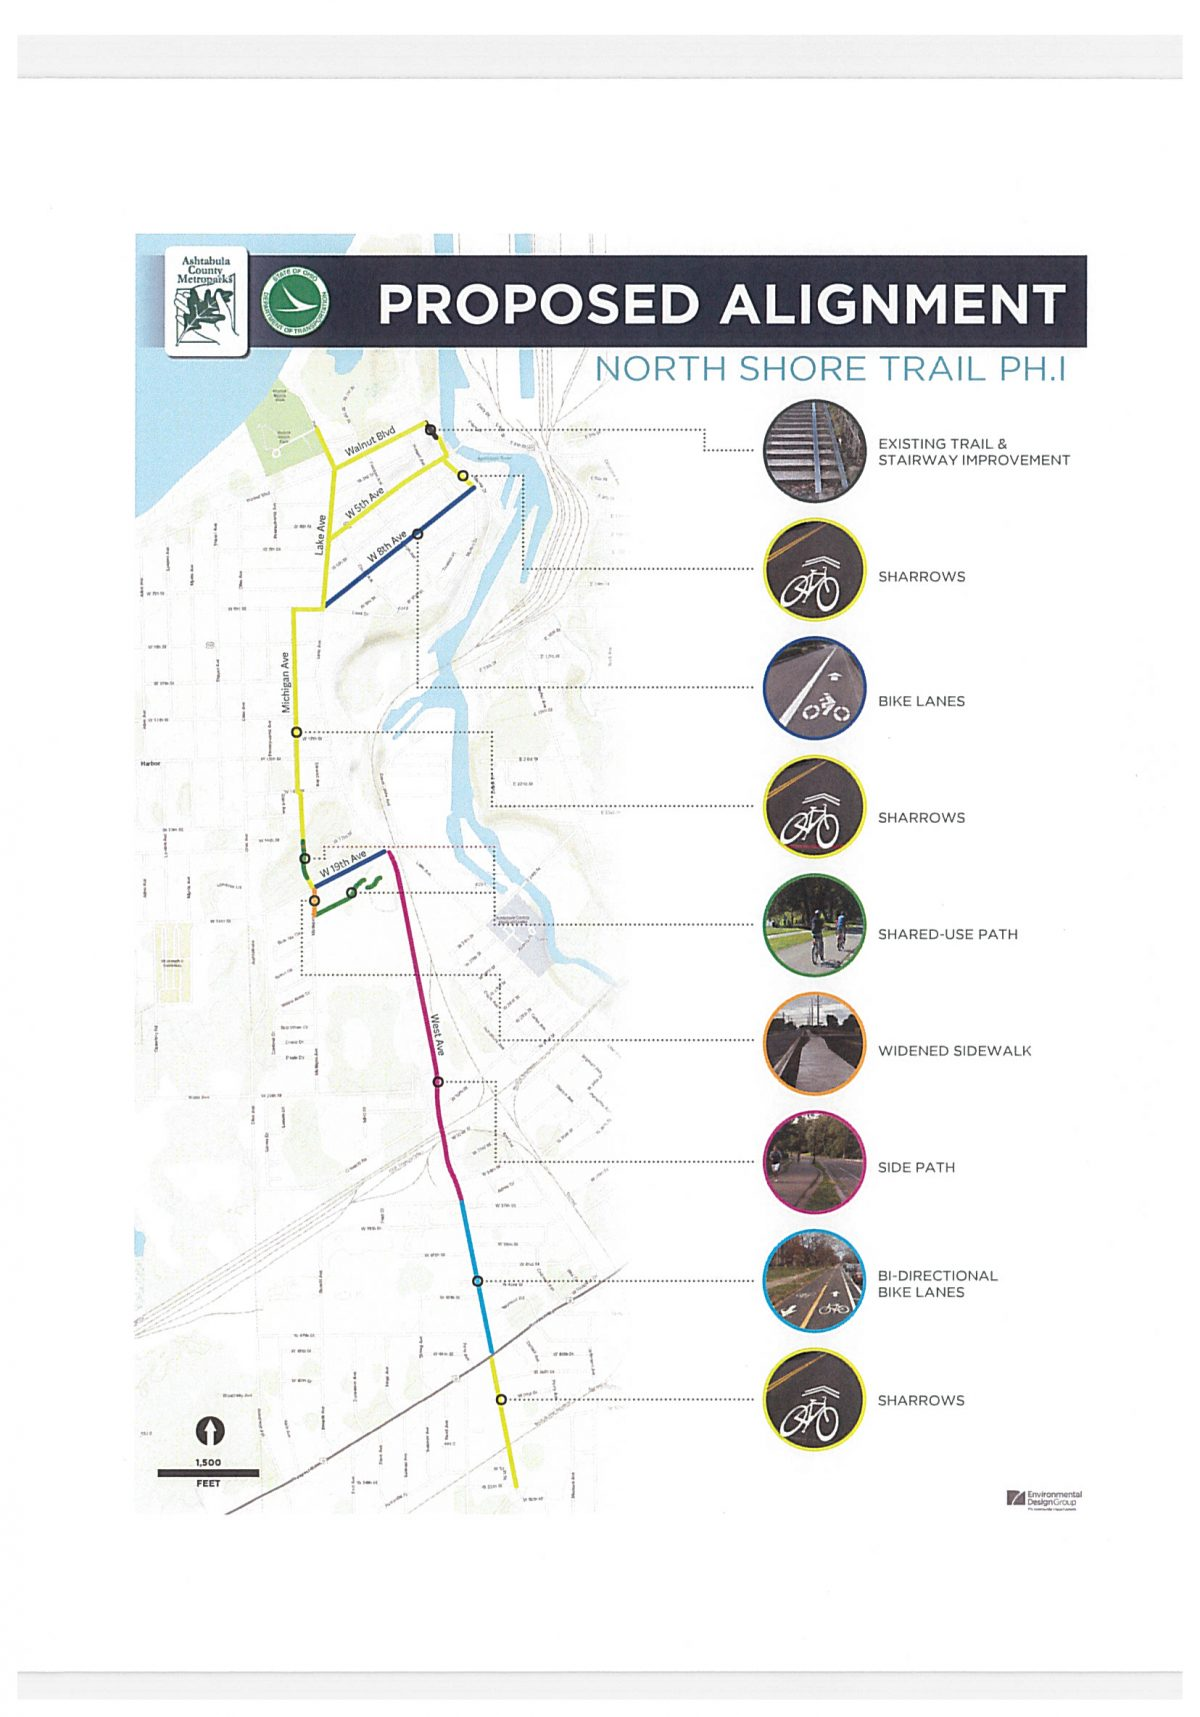 photo of proposed map and trail of the North shore trail project